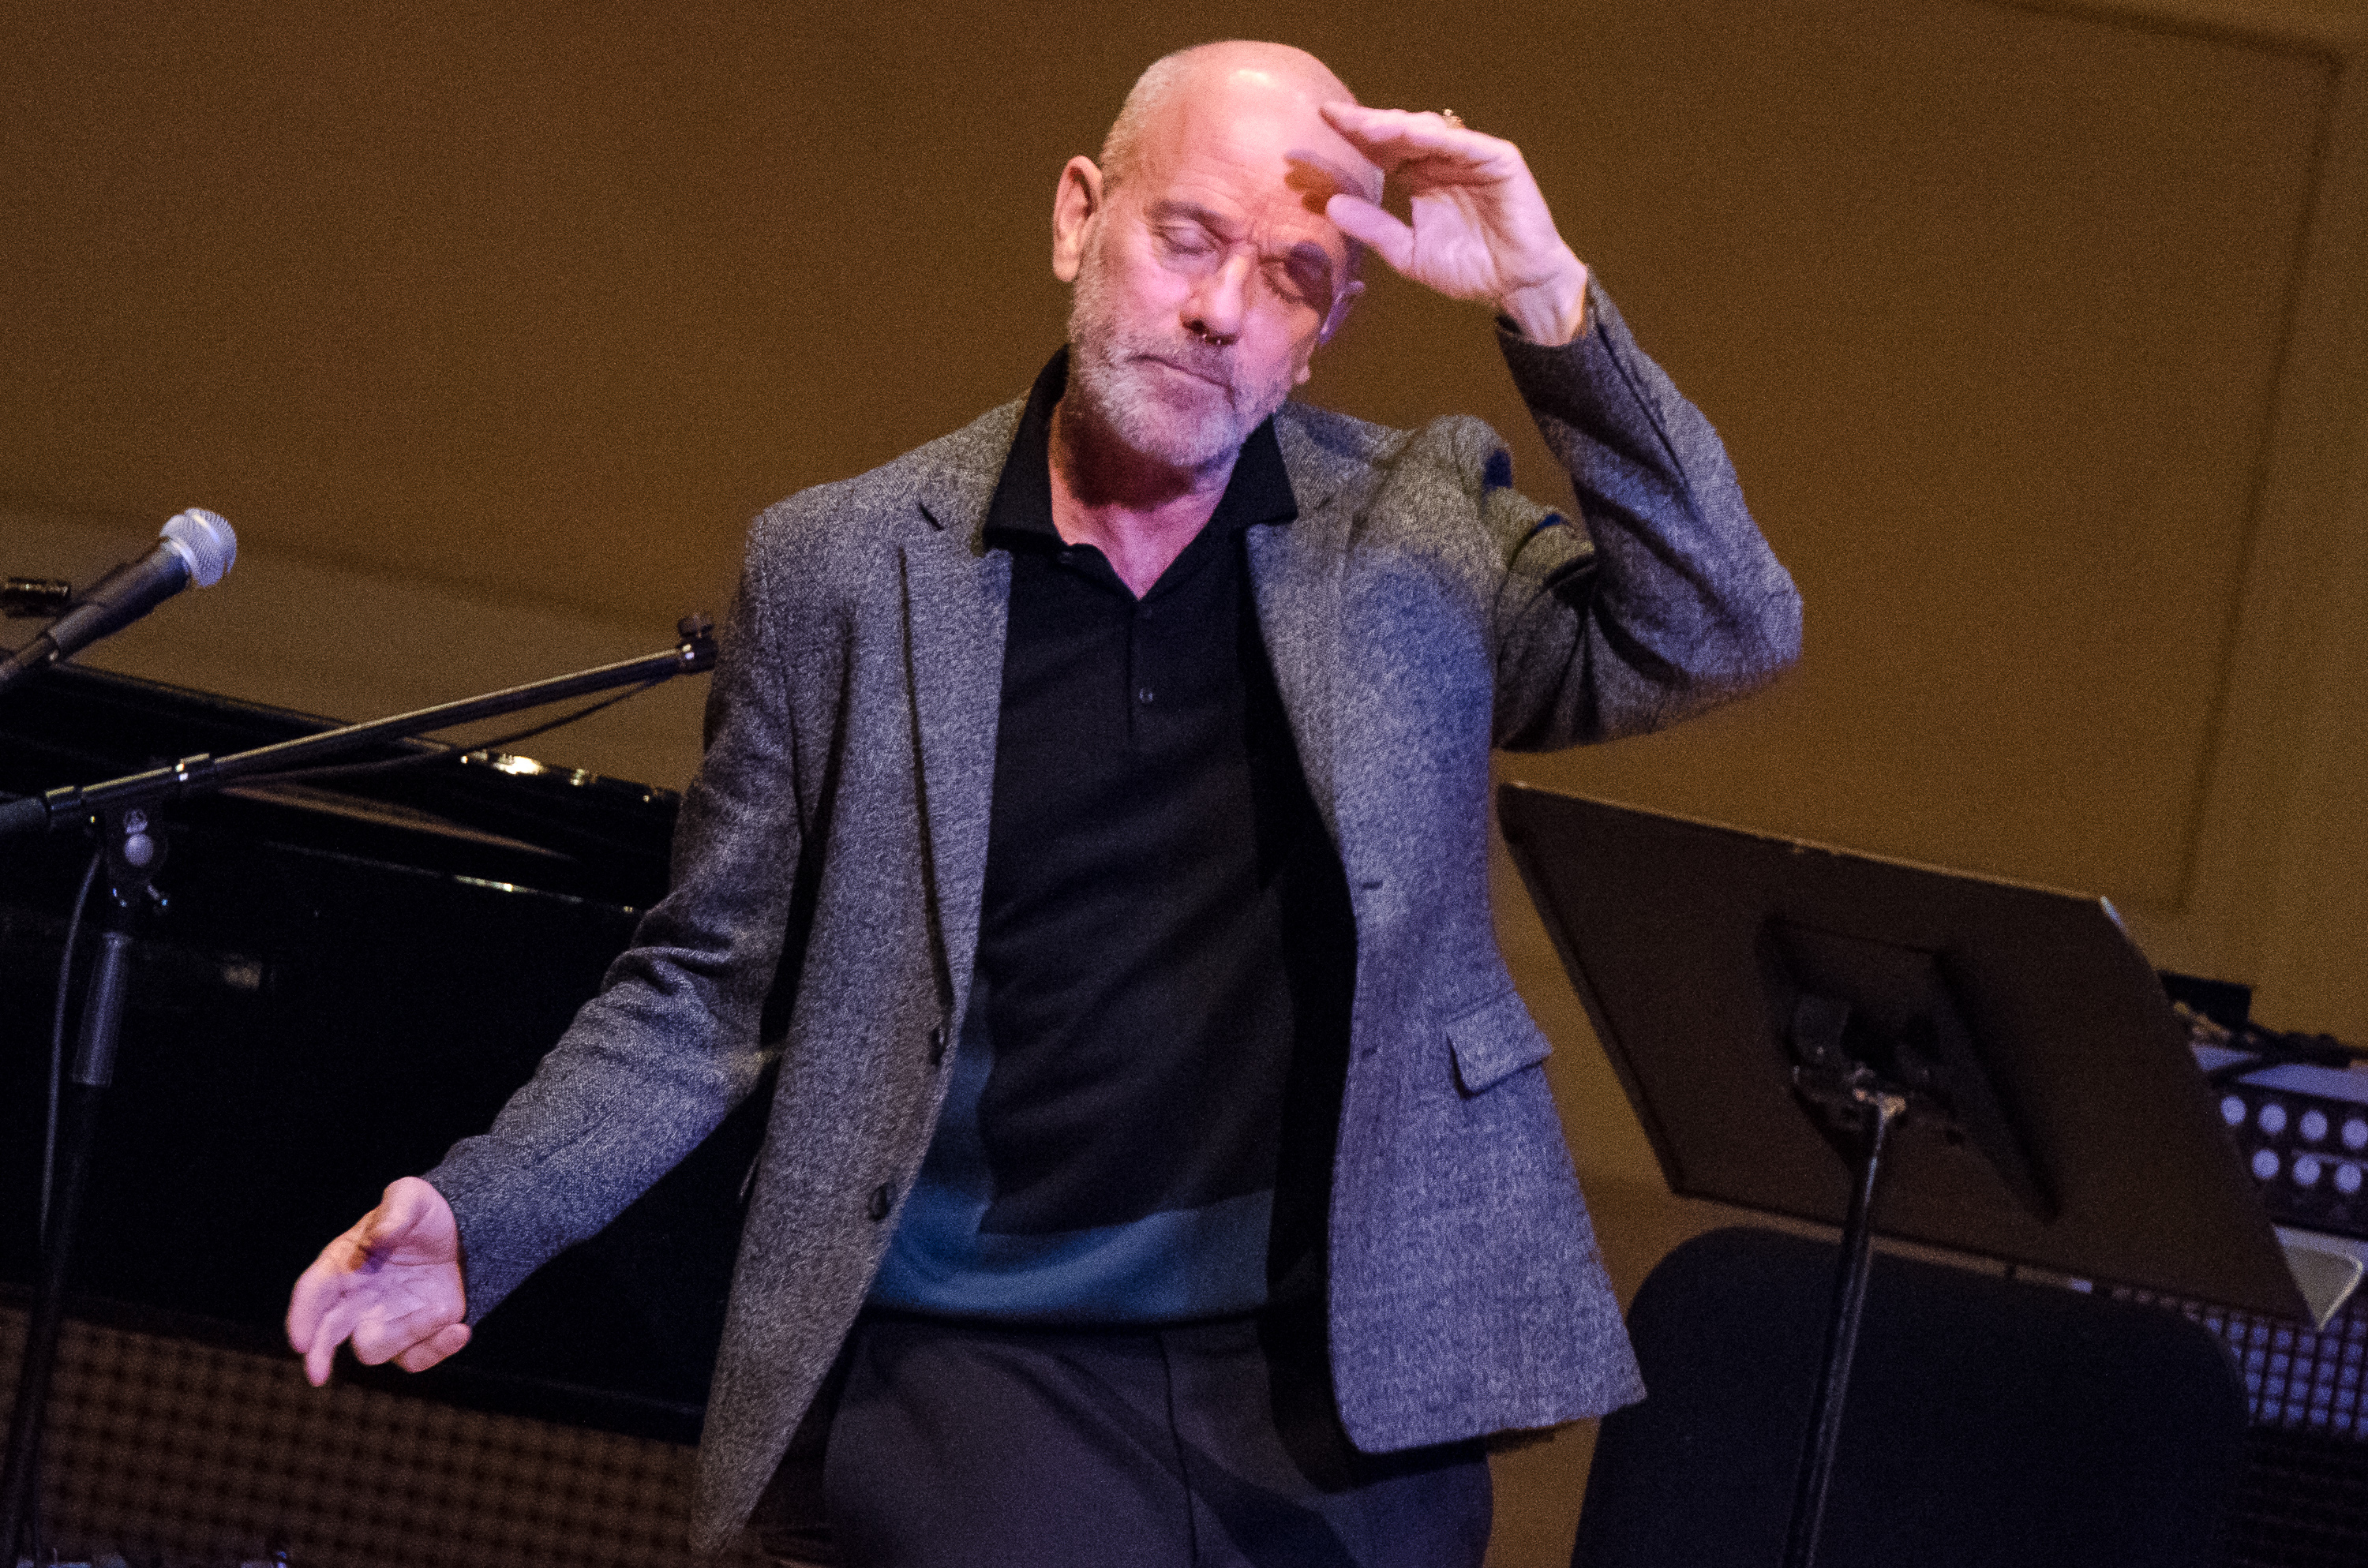 michael stipe pathway to paris ben kaye 6 Michael Stipe, Patti Smith, and Others Promote Climate Change Awareness at NYCs Carnegie Hall (11/5)